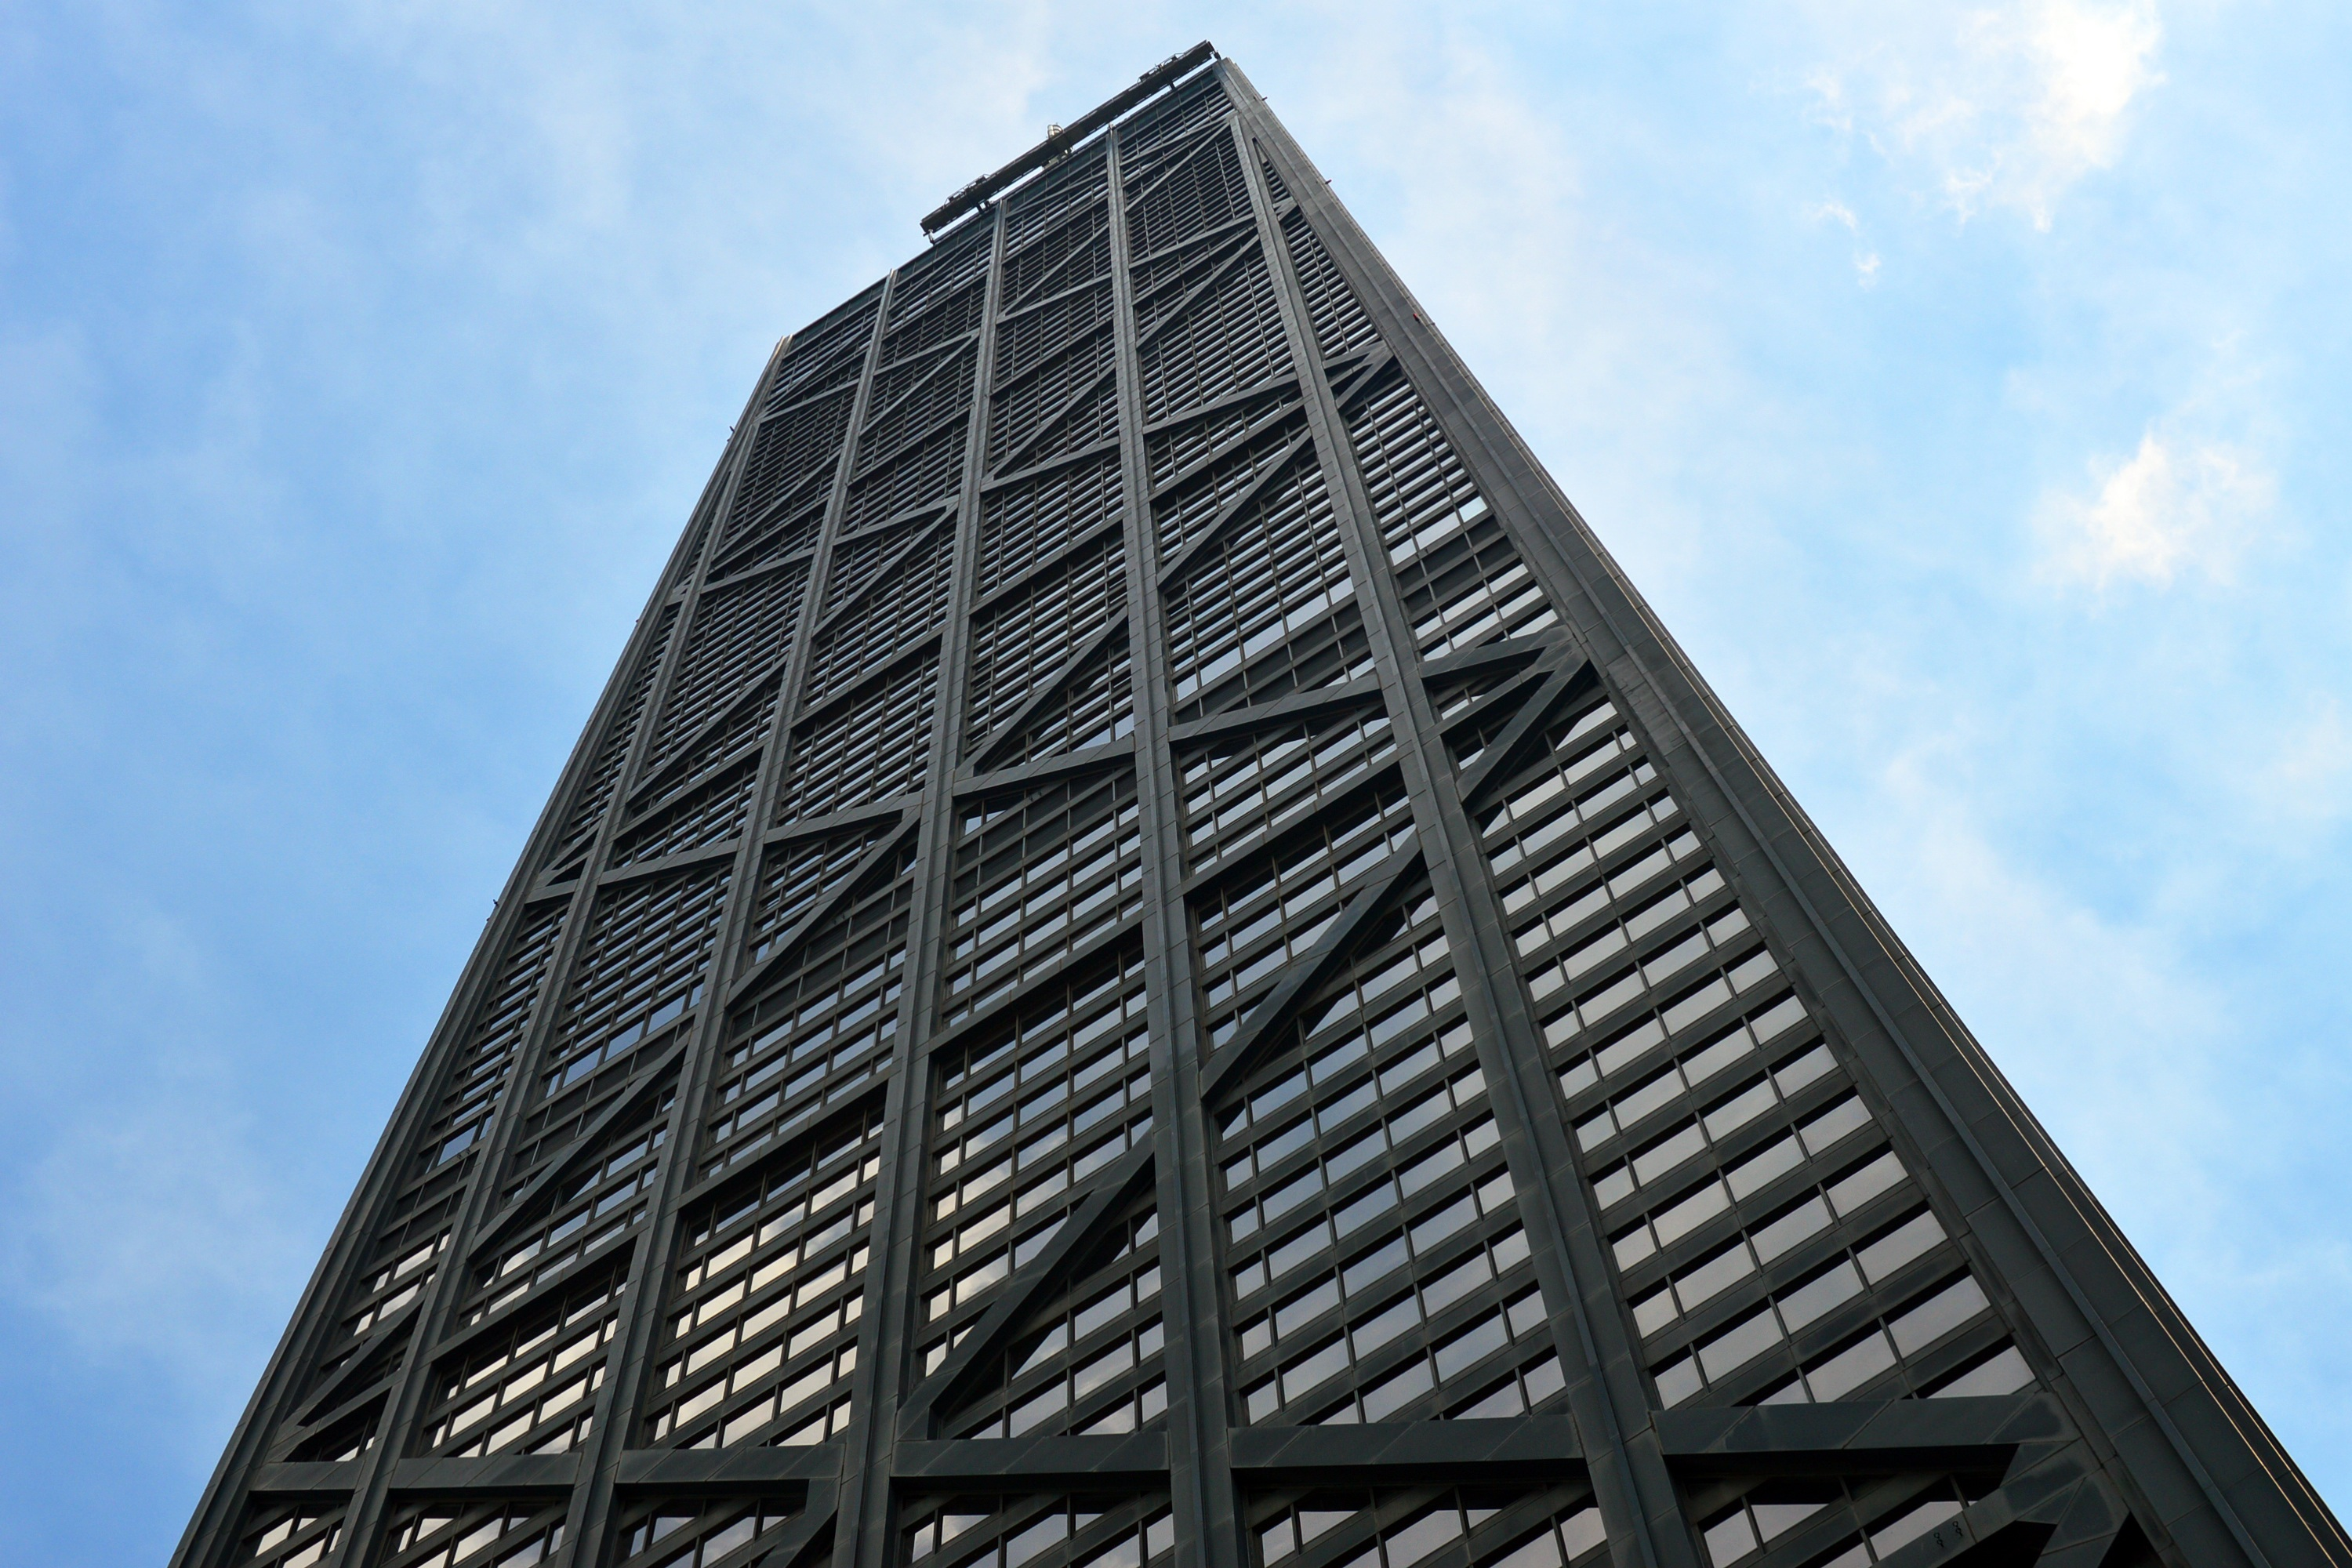 Low Angle Photography of Black High Rise Building  Free